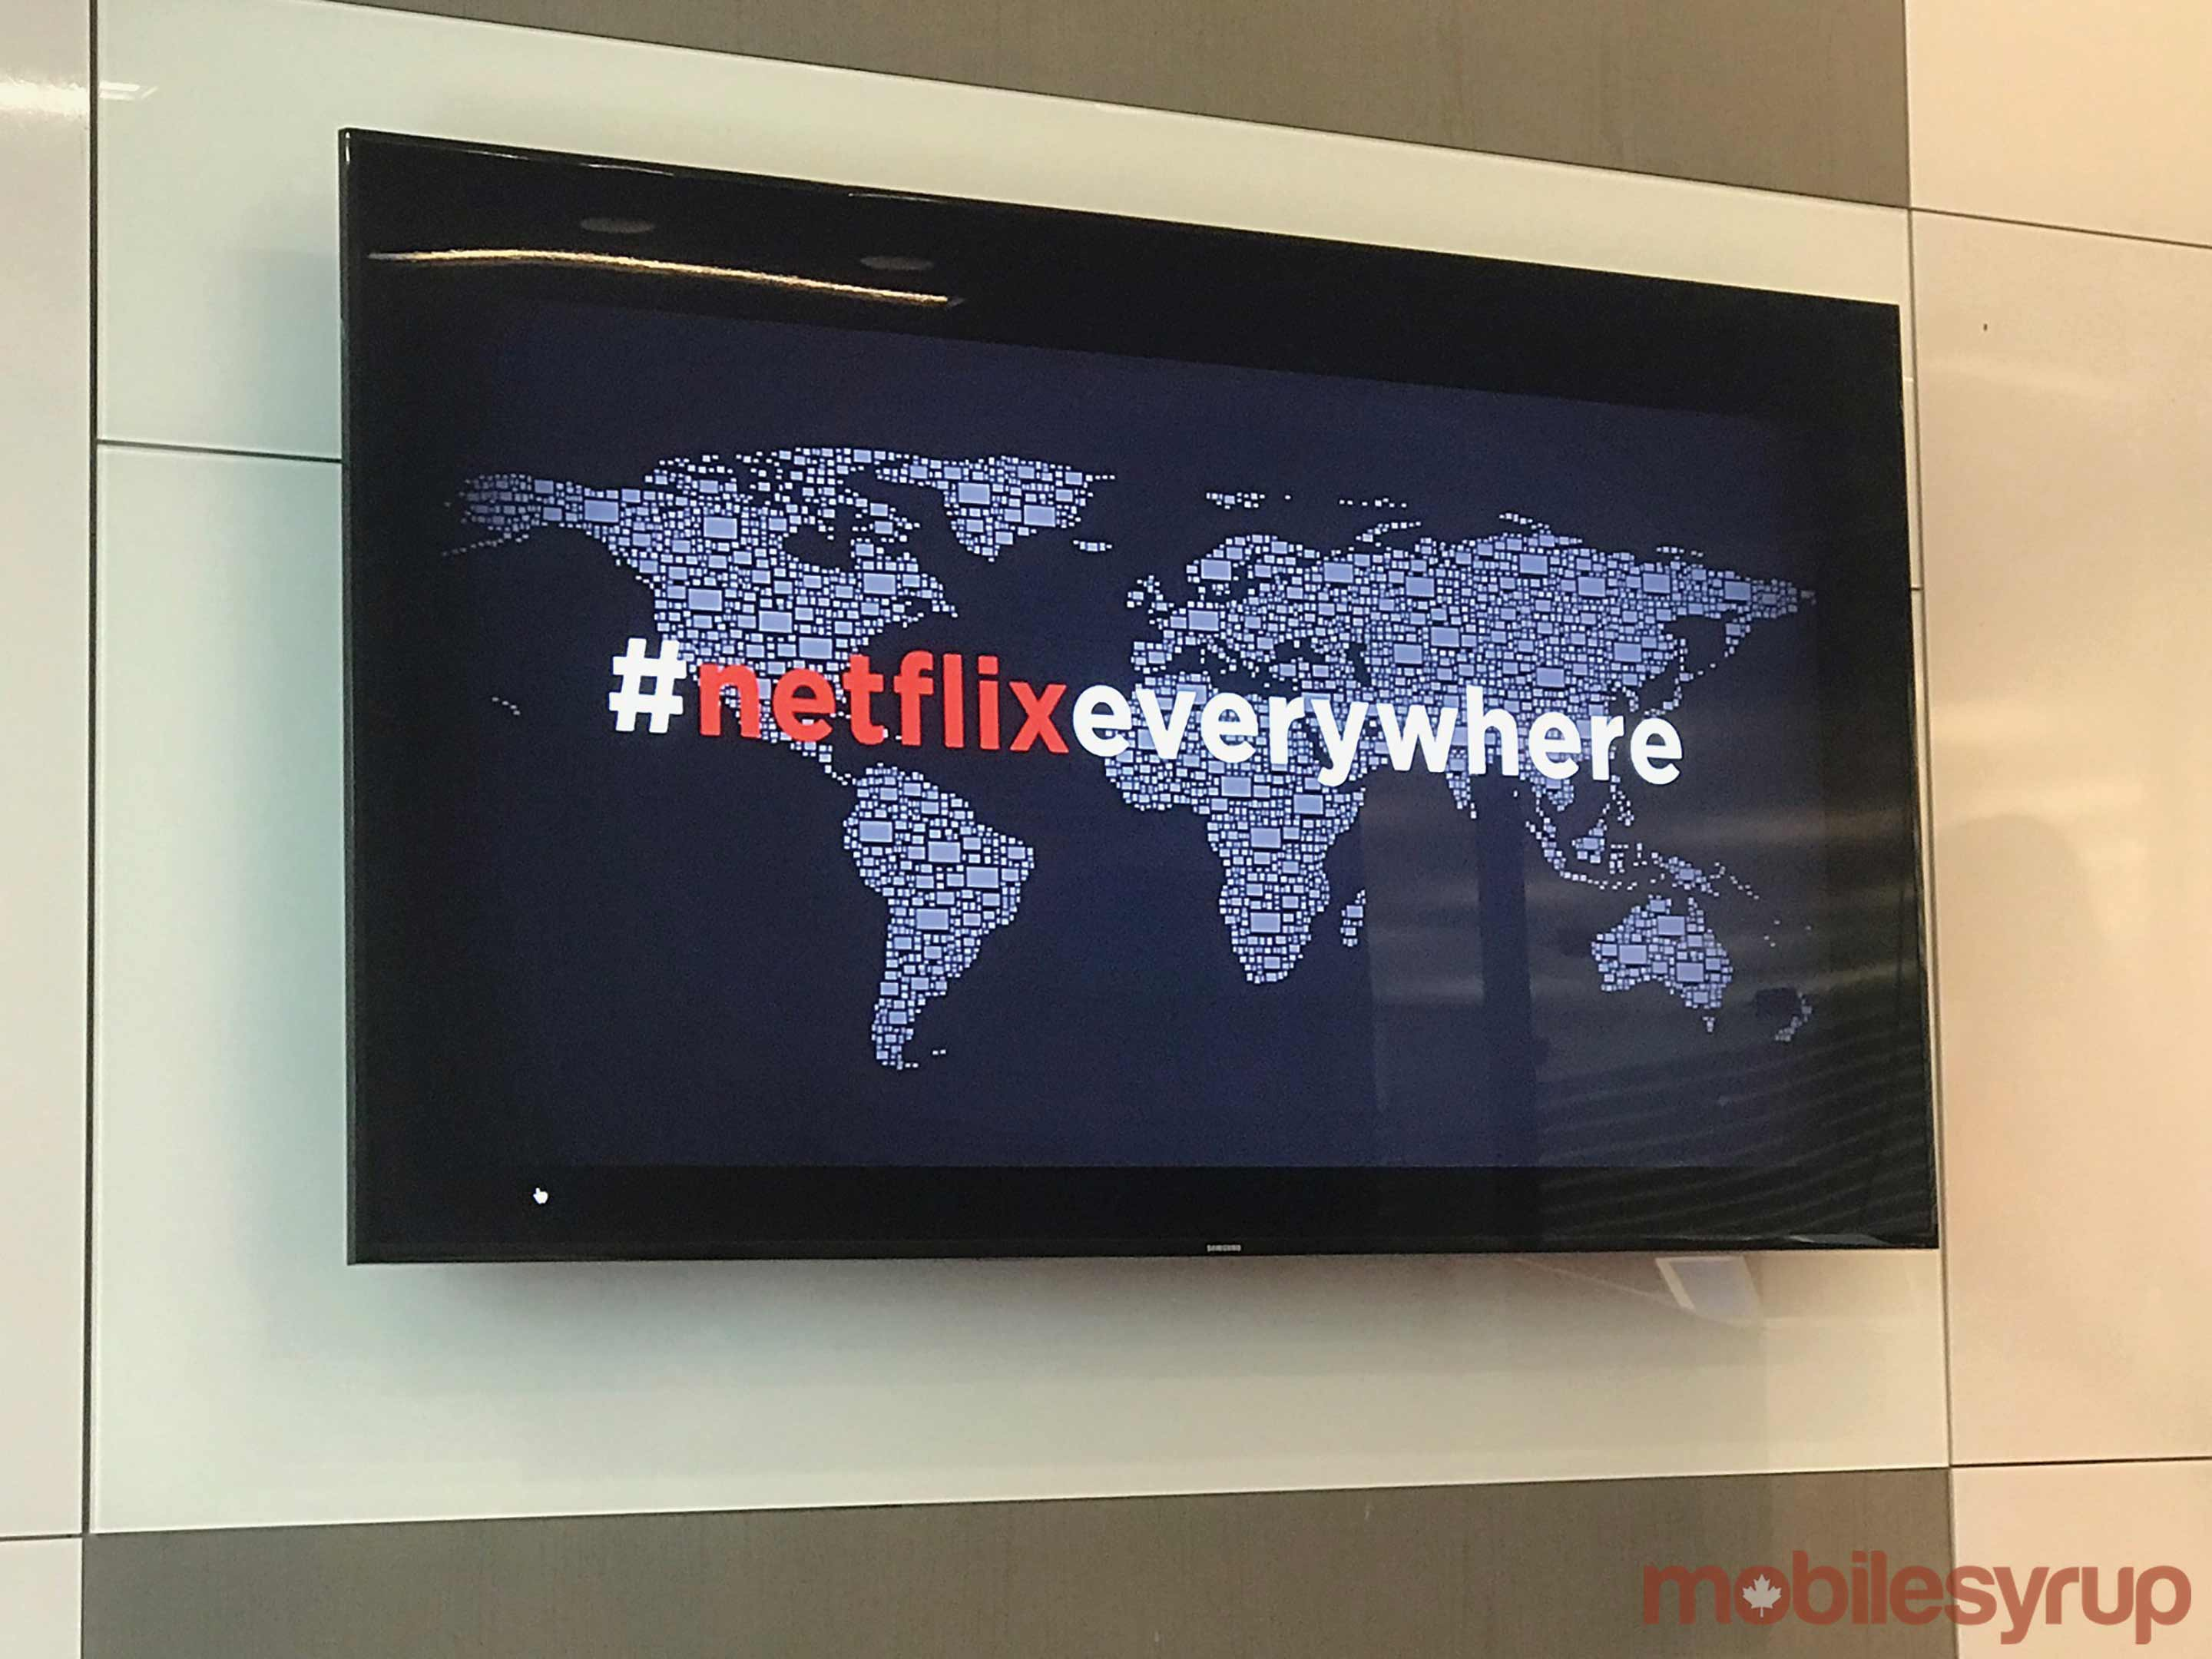 Netflix Everywhere message on TV